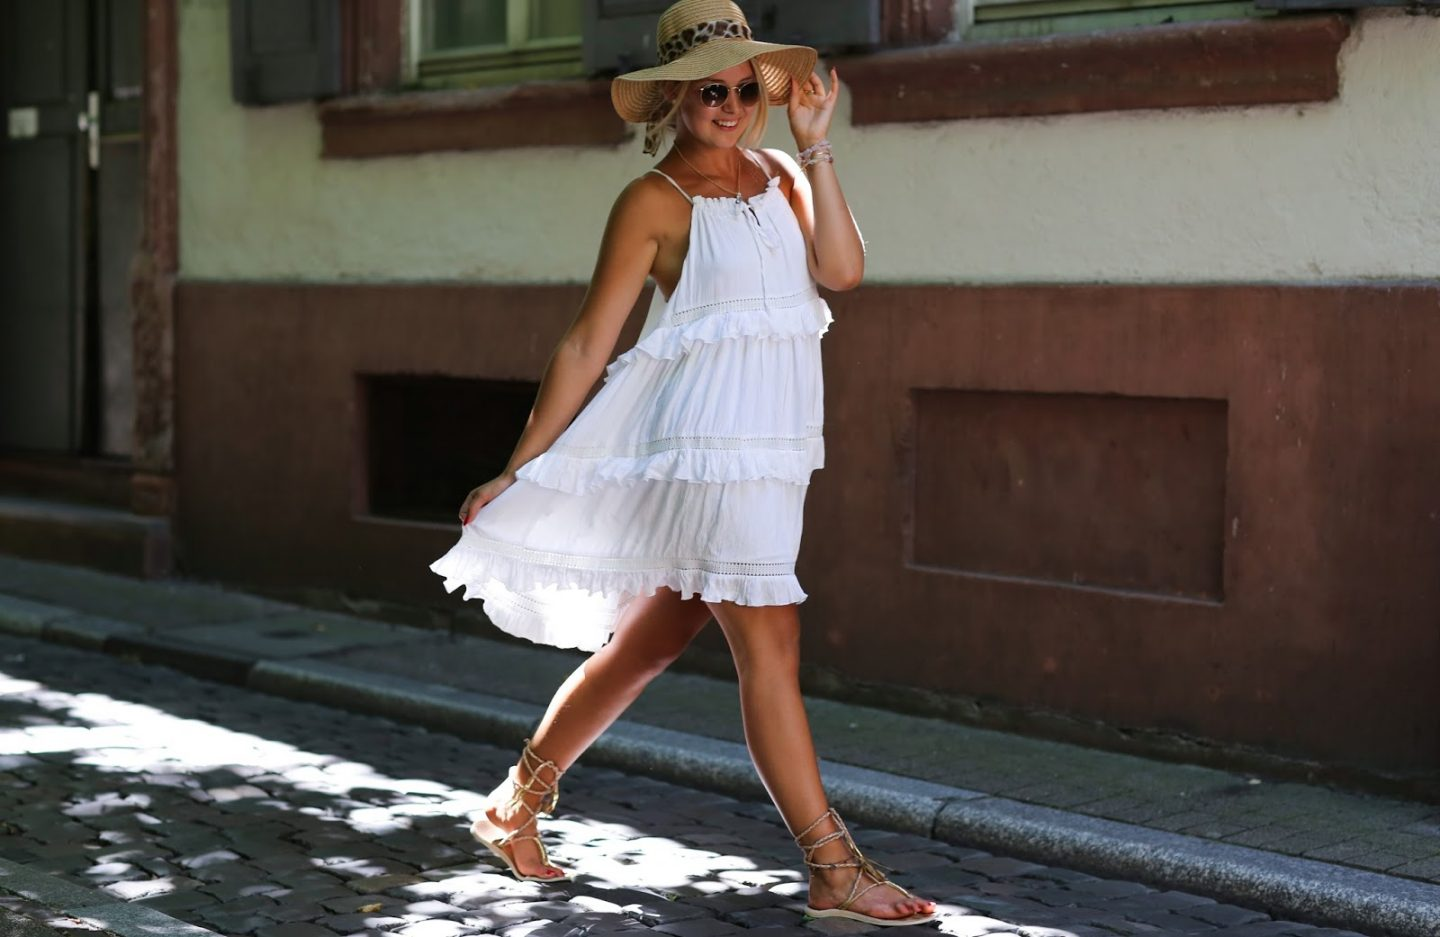 SWING DRESS – SUMMER IN THE CITY